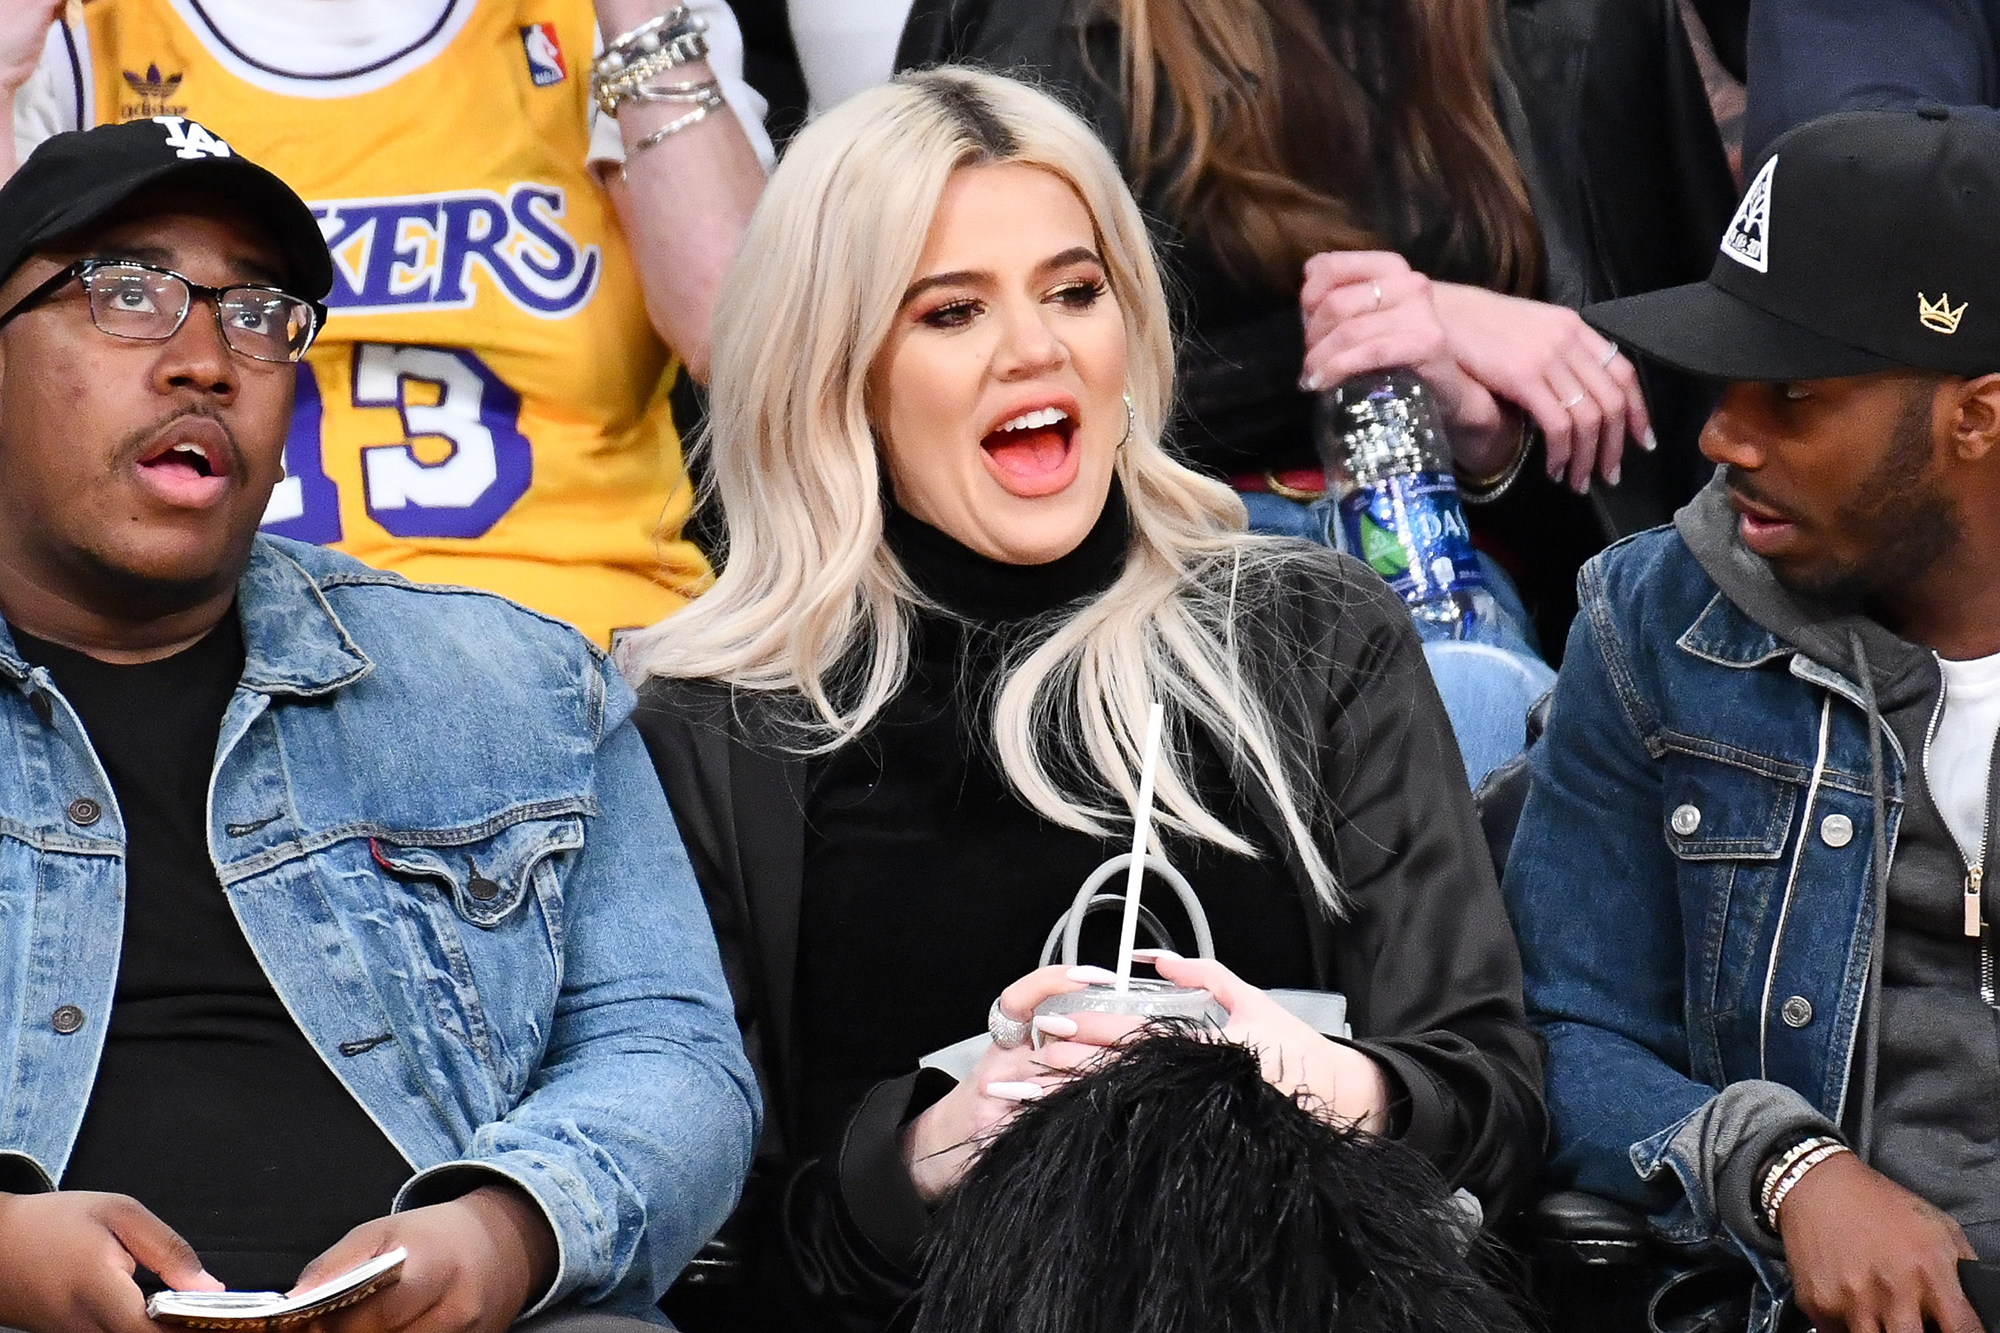 Khloe Kardashian Supports Beau Tristan Thompson Courtside at Cleveland Cavaliers Game - Kardashian looked surprised as she watched the action on the court. Paul, meanwhile, gazed at her reaction.